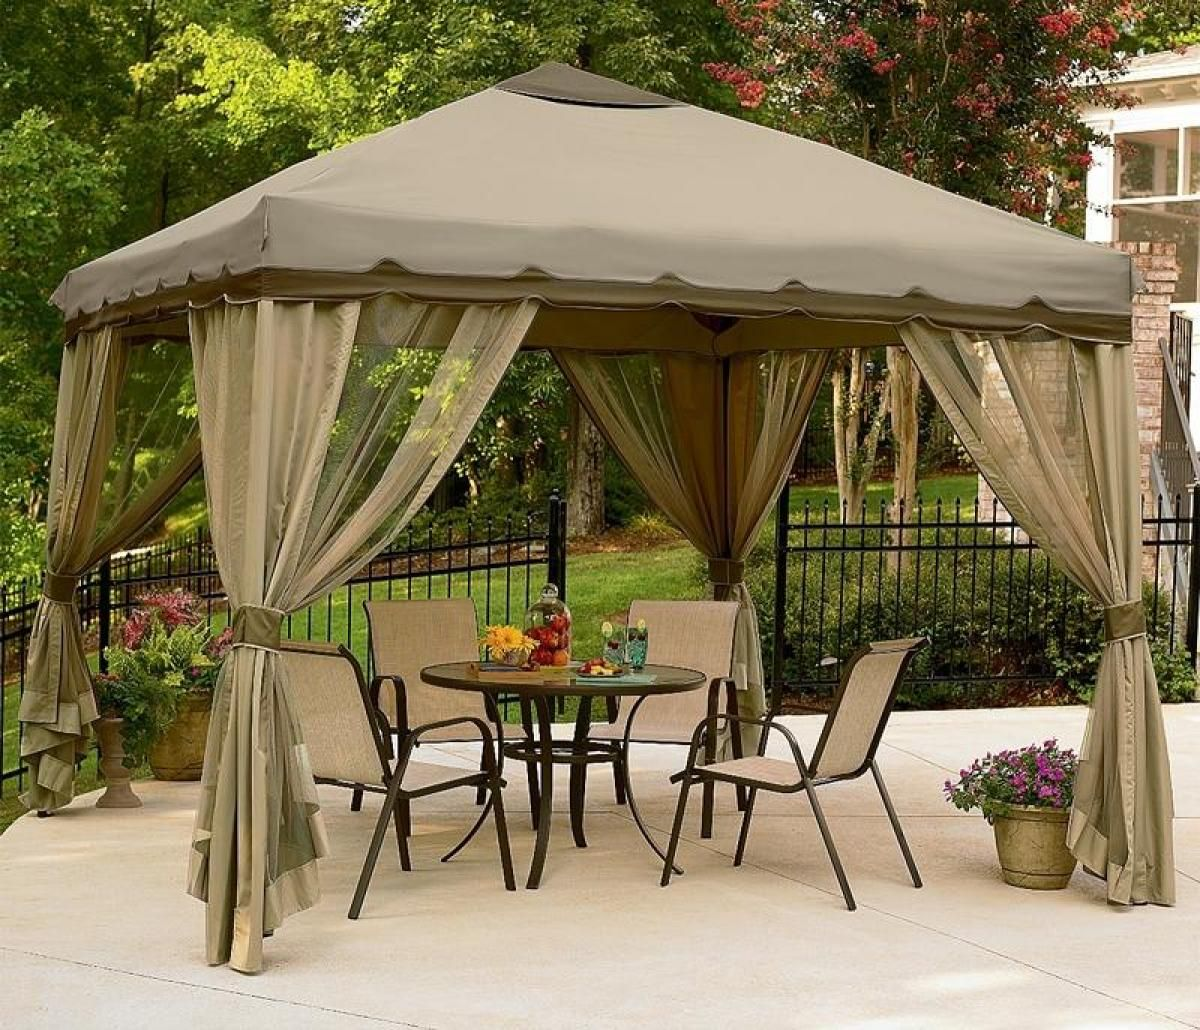 Garden Furniture Gazebo awesome gazebo canopy decors with transparent curtains set as well